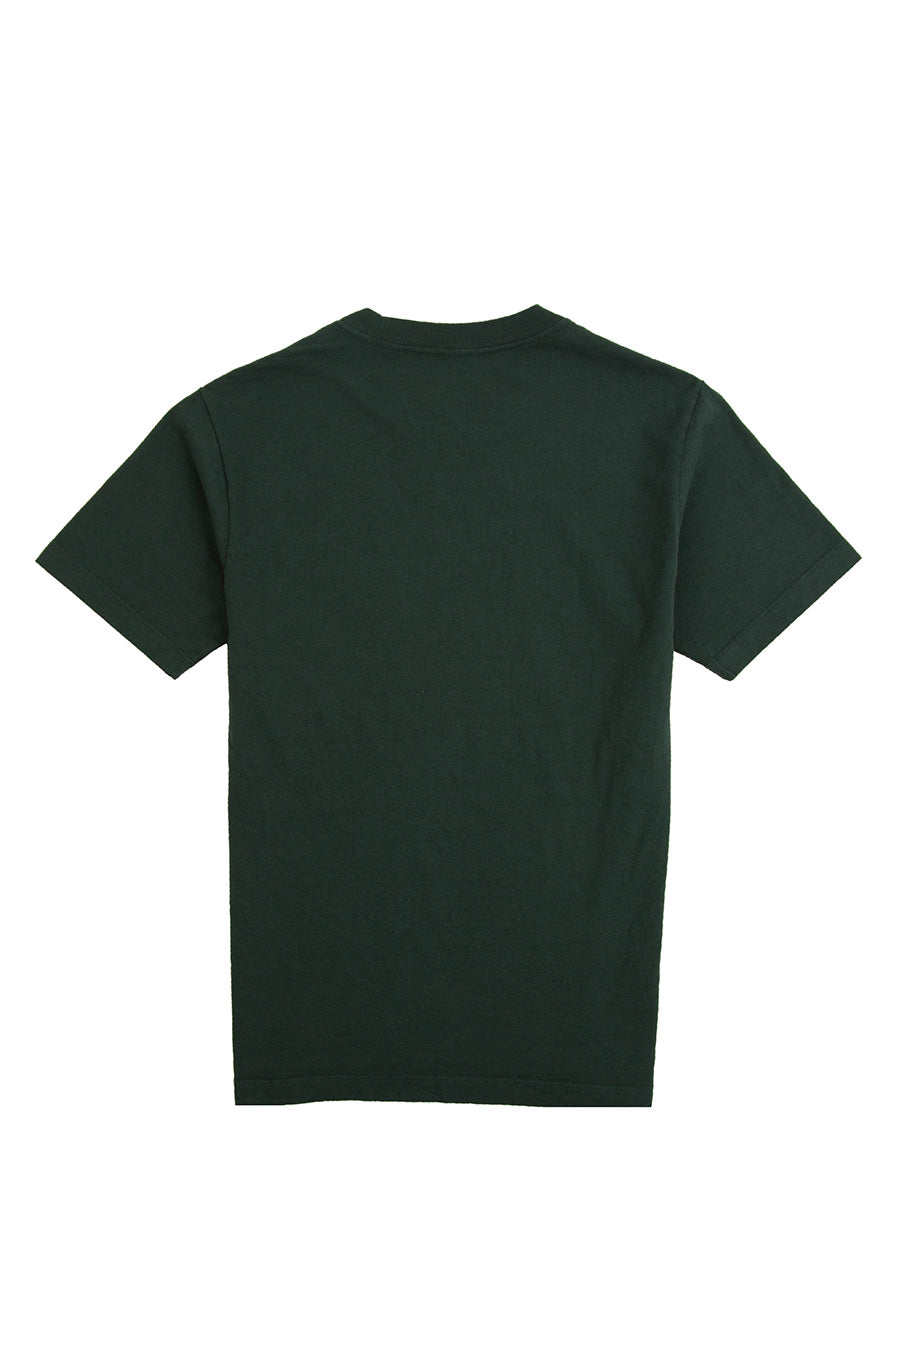 Lady White Co. - Hunter Green Balta Pocket T-Shirt | 1032 SPACE